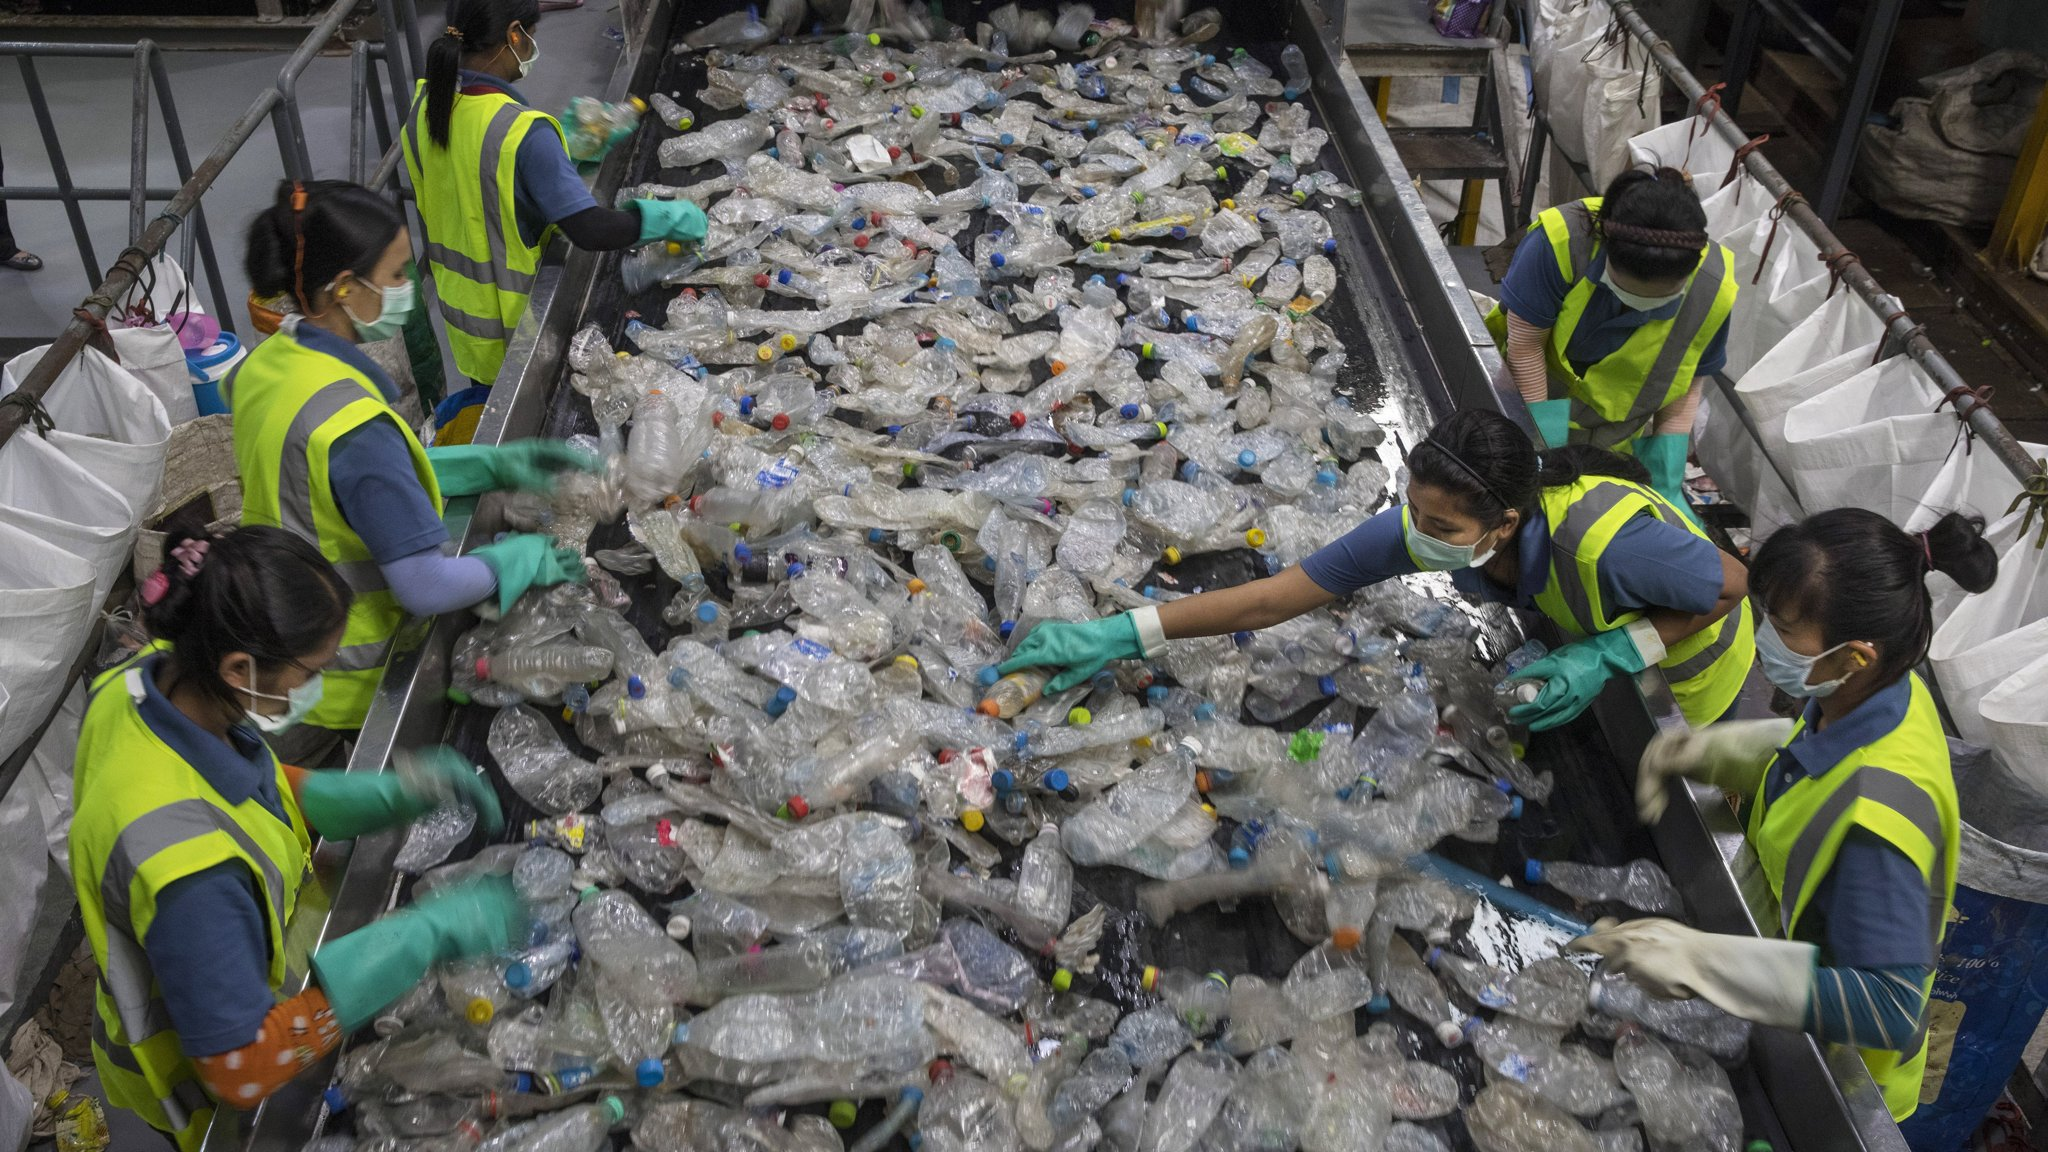 A plastics recycling plant in Thailand. The country's growing mountain of foreign waste has inflamed public opinion after a spate of pollution complaints from local communities. Image: Financial Times/Getty